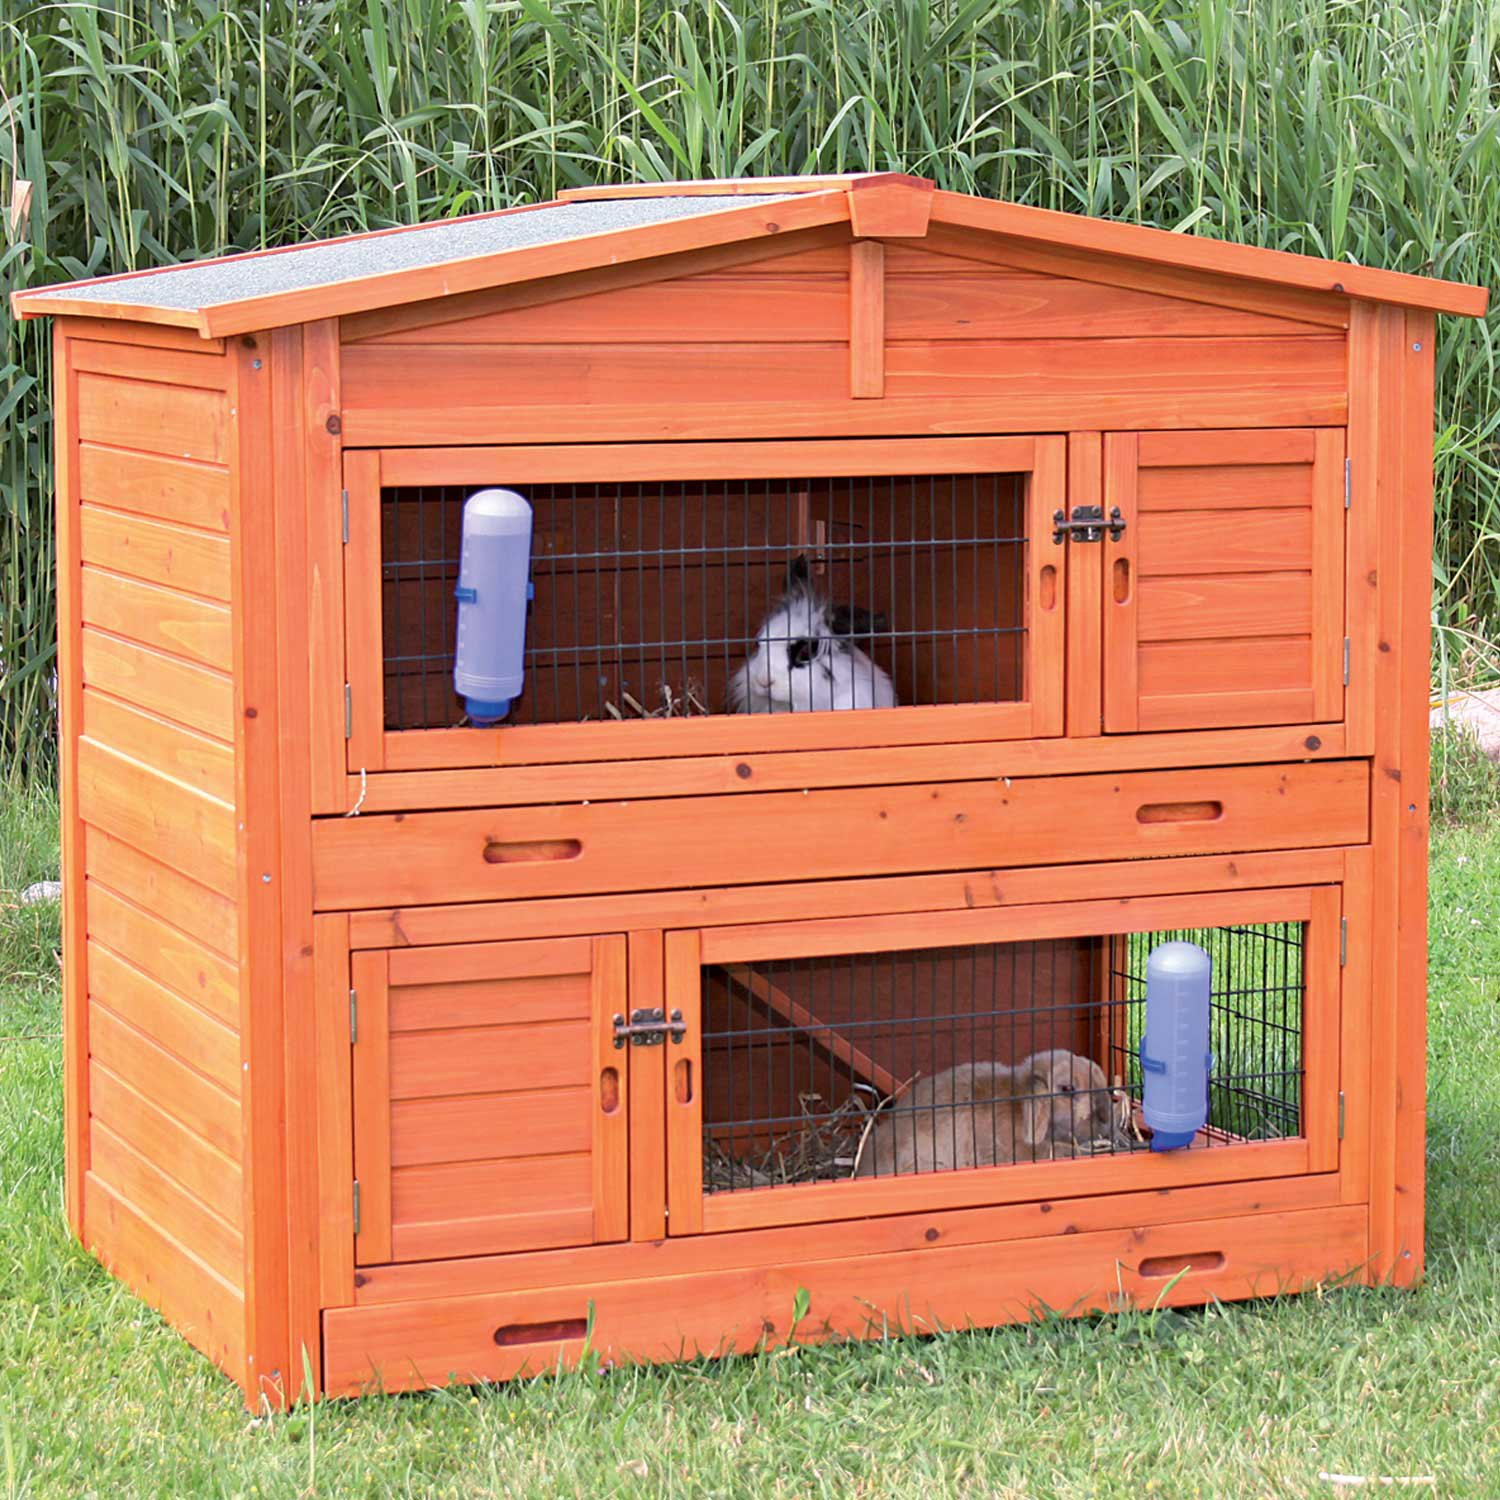 Trixie Natura Two Story Peaked Roof Rabbit Hutch 52.25 L X 32.25 W X 47.25 H Large Brown